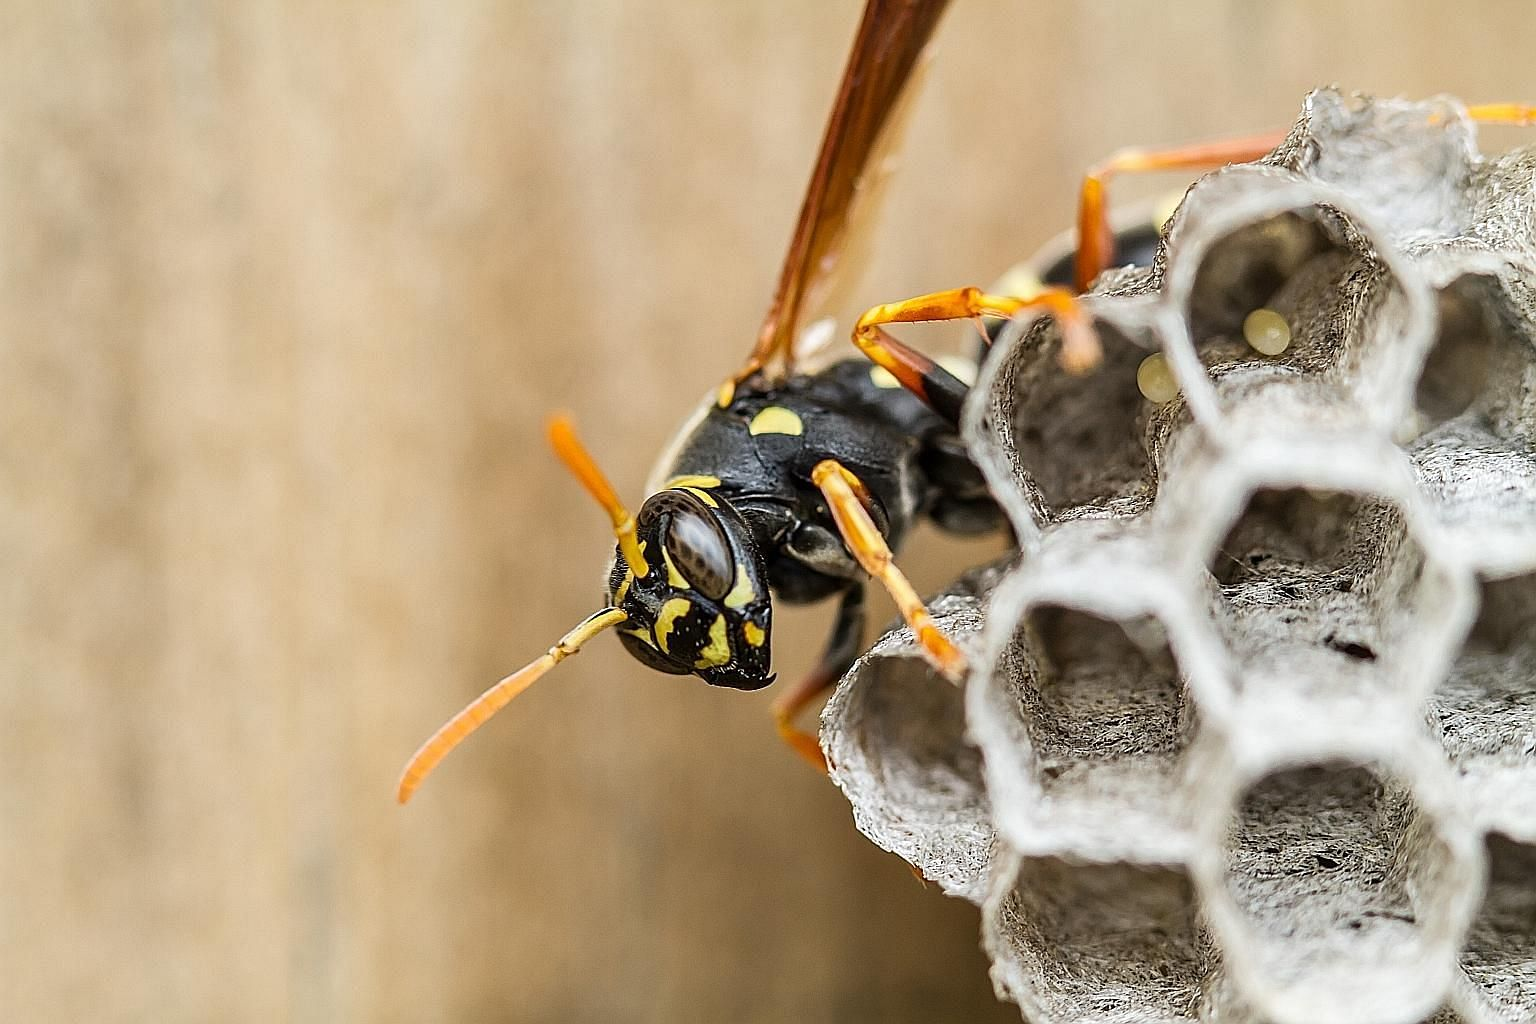 A study has found that paper wasps have the ability to compare things indirectly, based on previous juxtapositions.